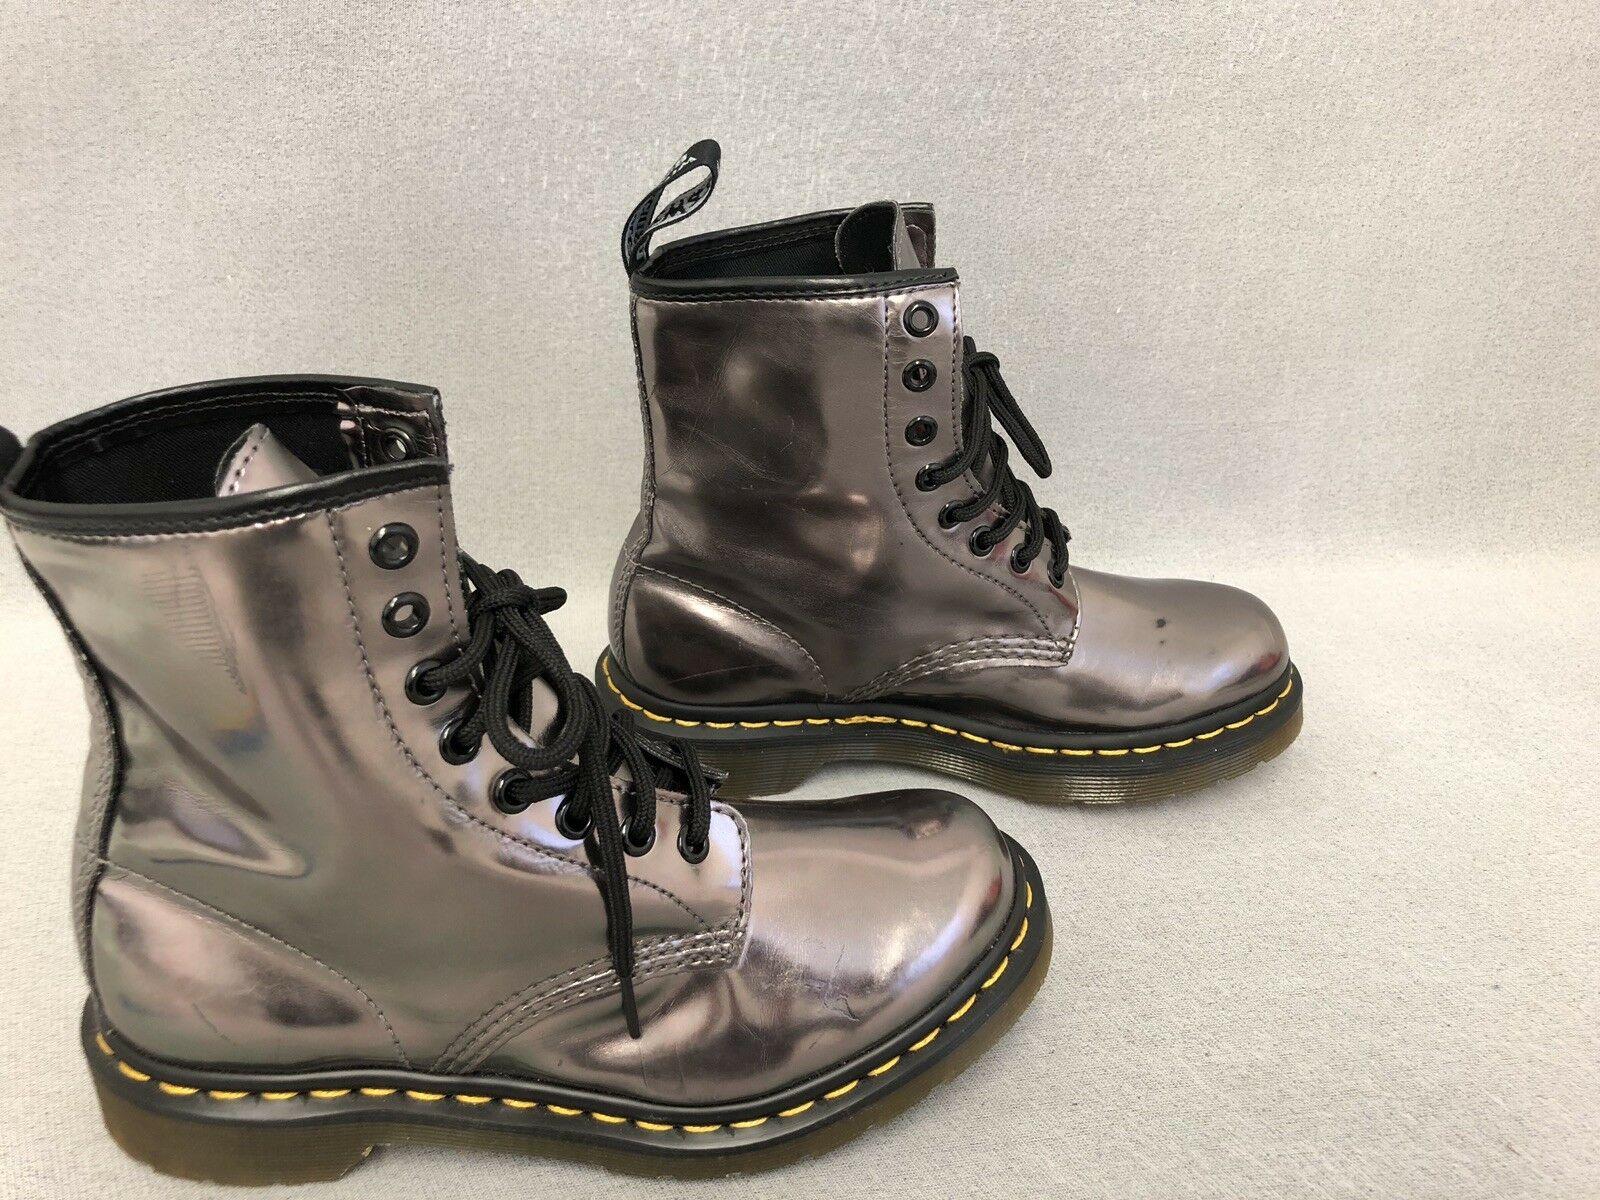 Dr Martens 14282 Womens  Boots Patent gold     Size US 6 BG4 93569f